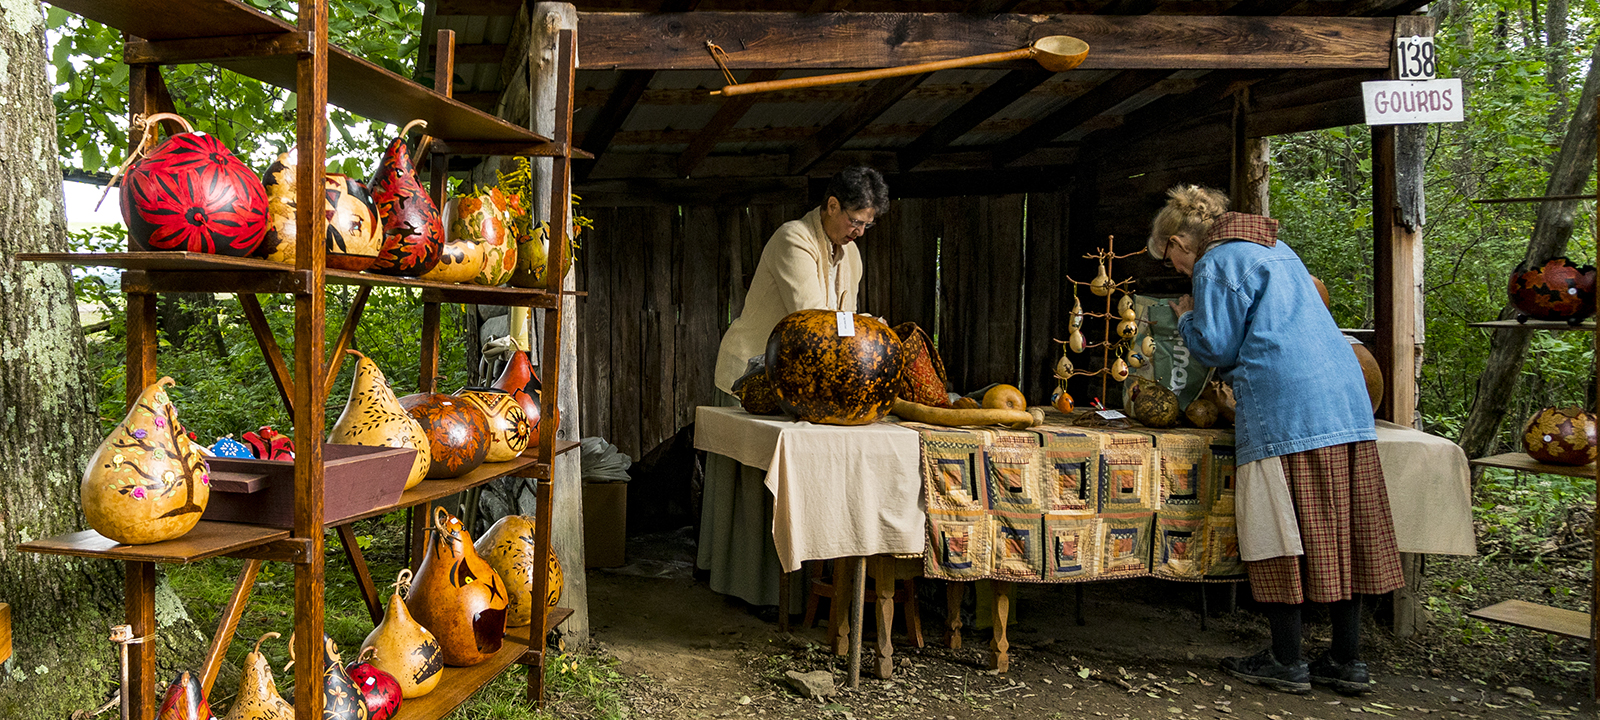 Two women work in a booth filled with decorated gourds for sale.